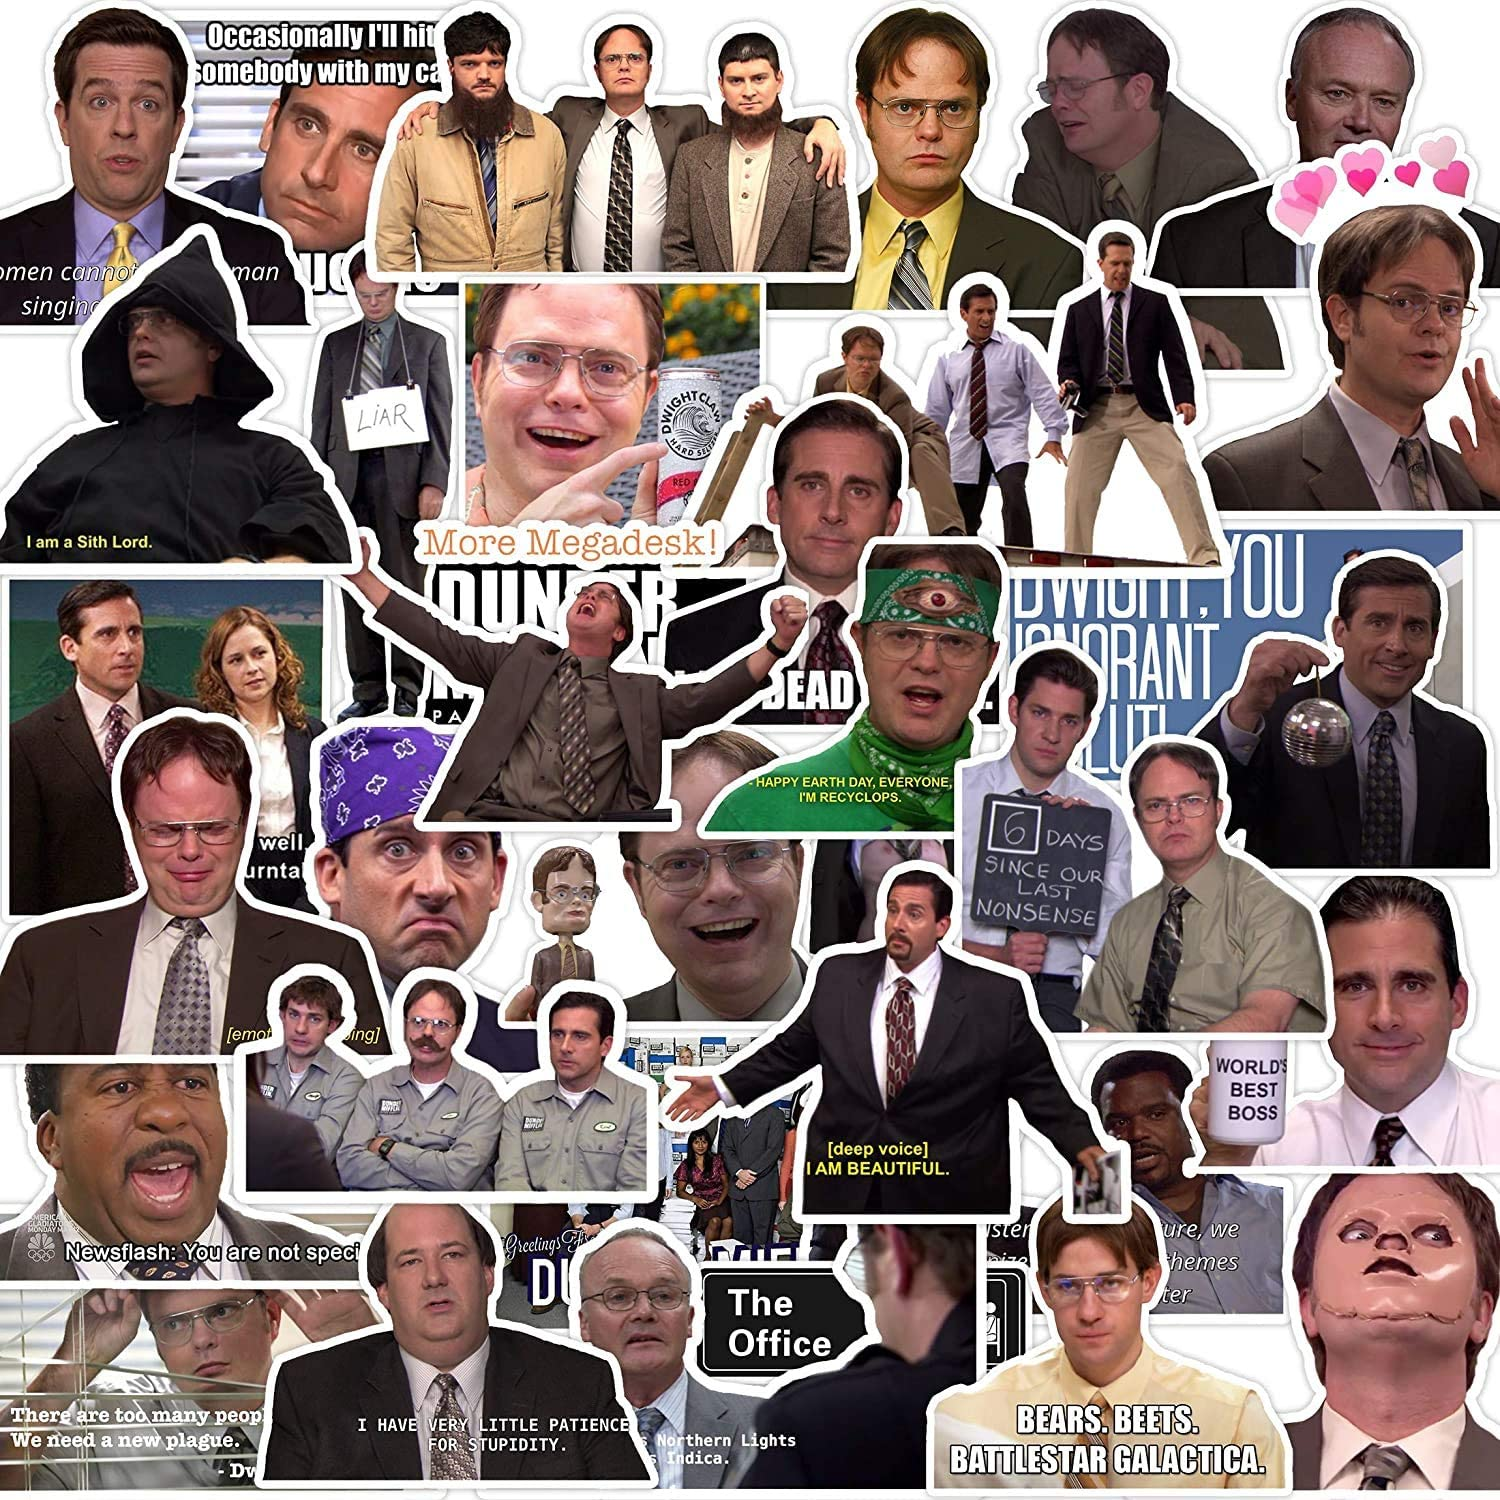 The Office Merchandise Stickers[50pcs], Funny Meme Sticker Pack with Dunder Mifflin Michael Dwight Jim Mike Design for Hydro Flask Folder Water Bottles Laptop Notebook Computer Guitar Bike Helmet